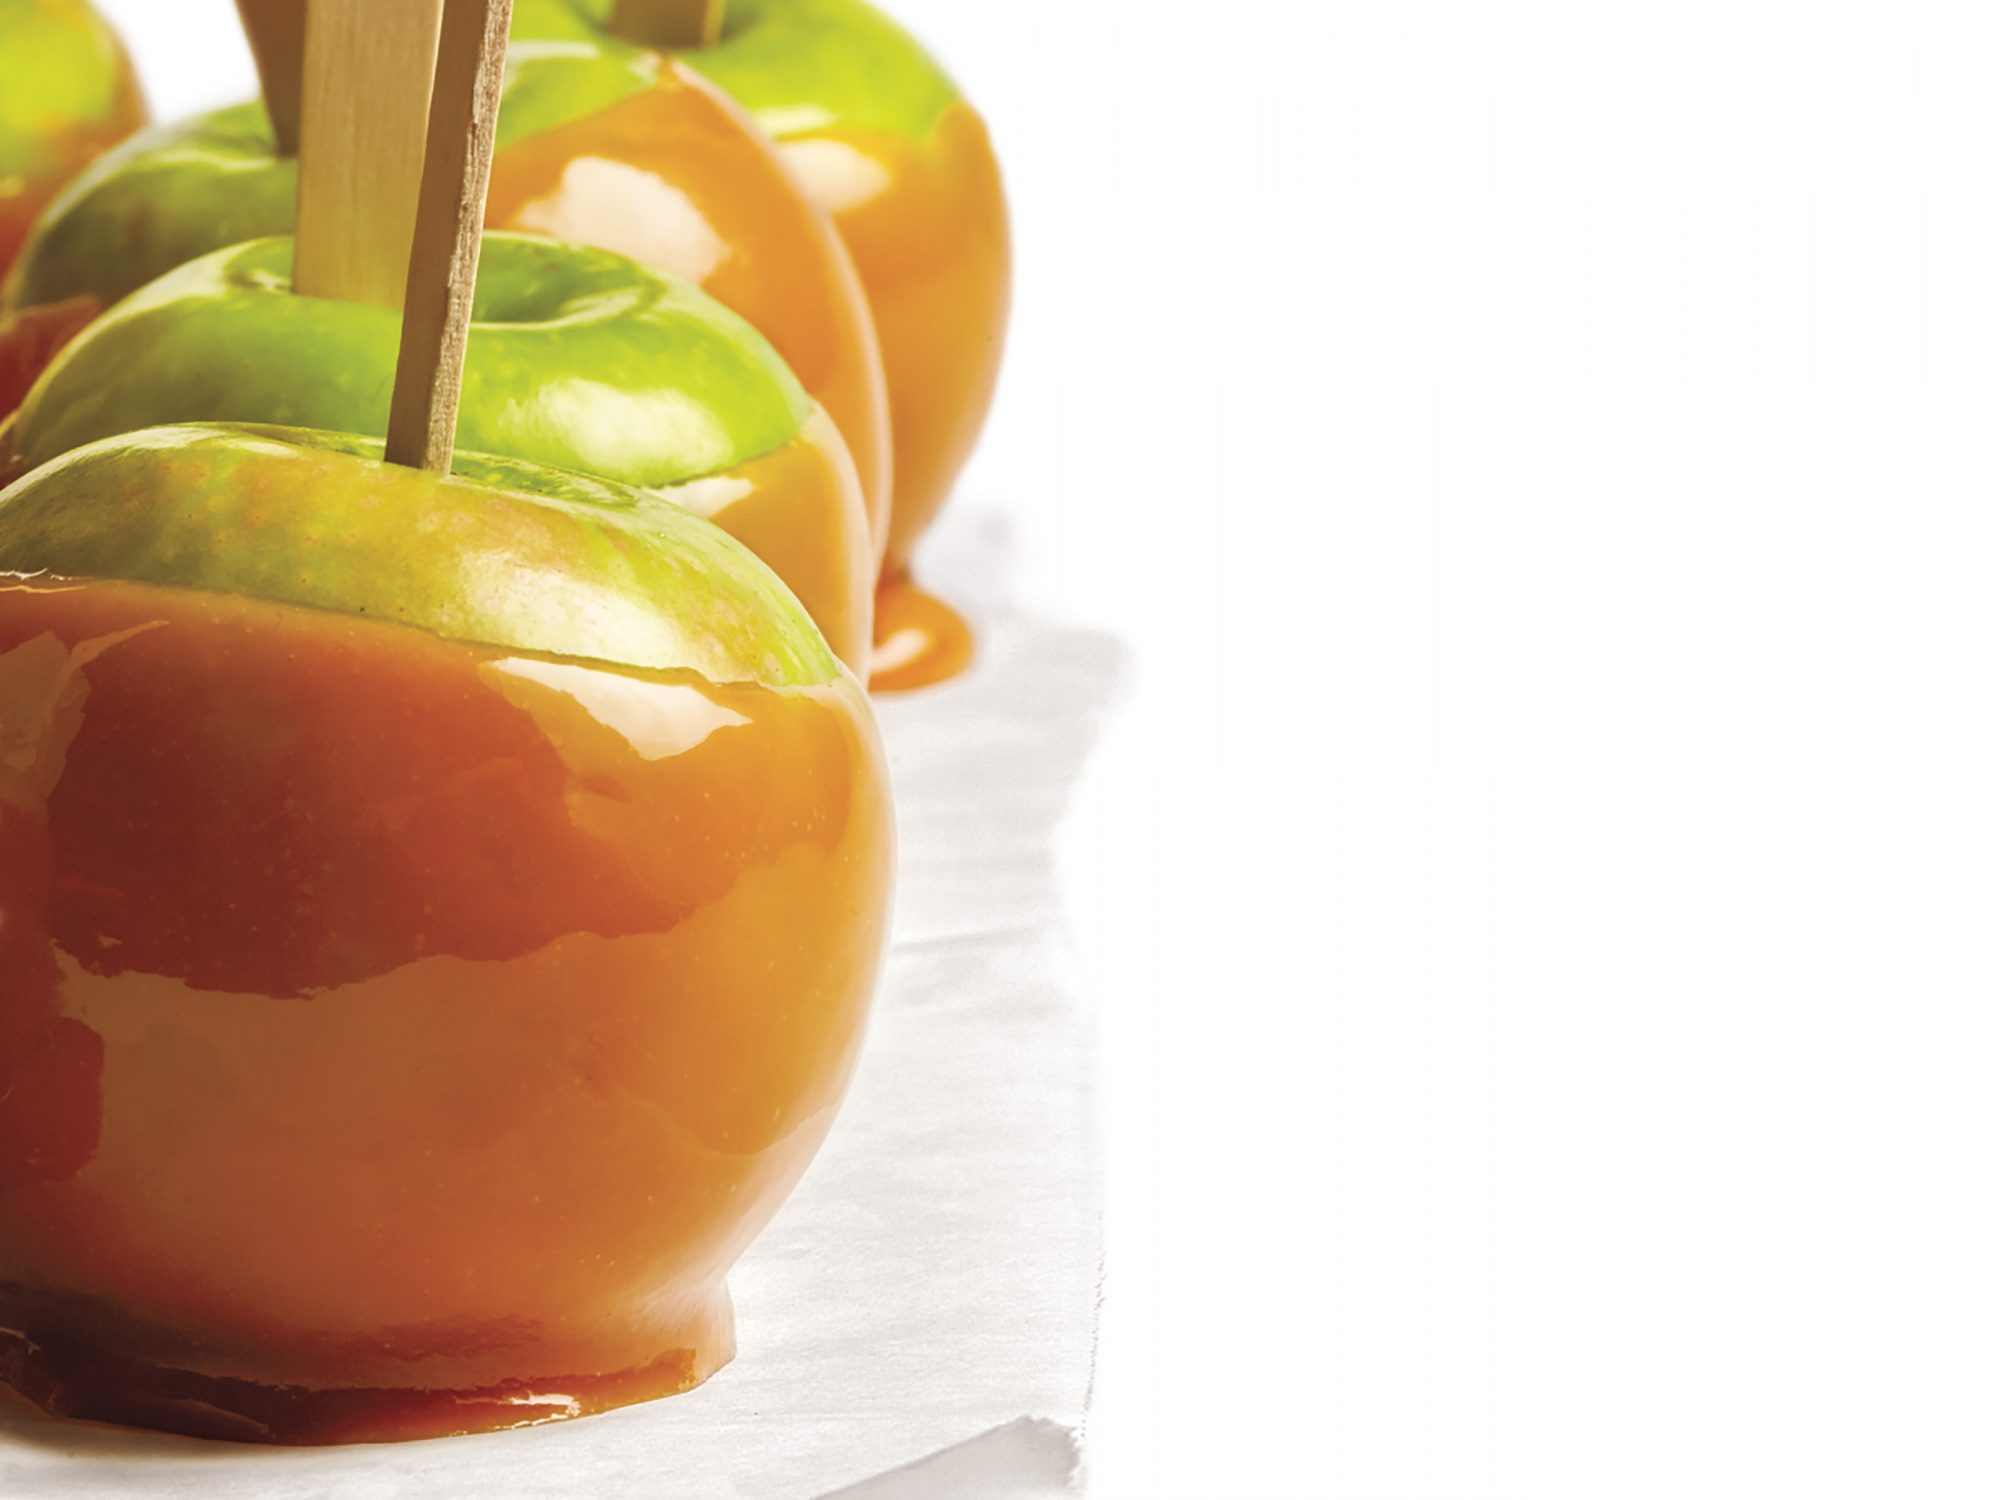 caramel-apples-ck-crop.jpg